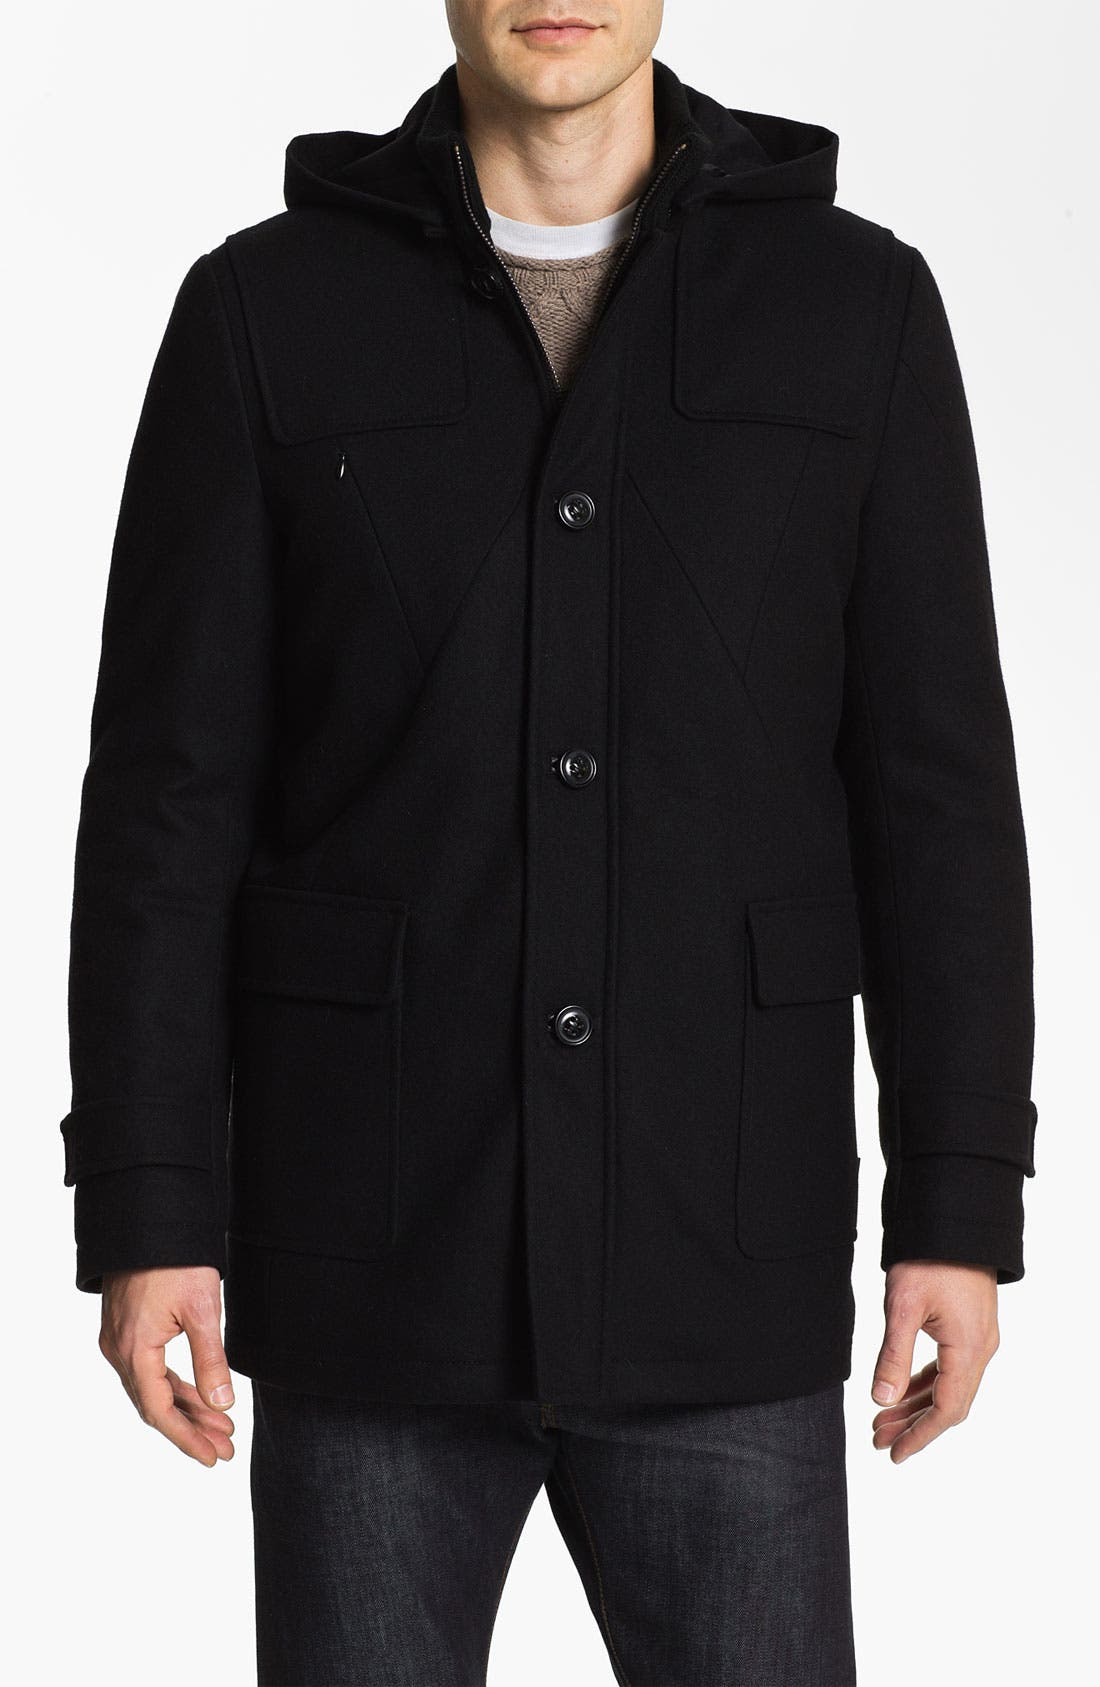 Alternate Image 1 Selected - Vince Camuto Wool & Cashmere Blend Duffle Jacket